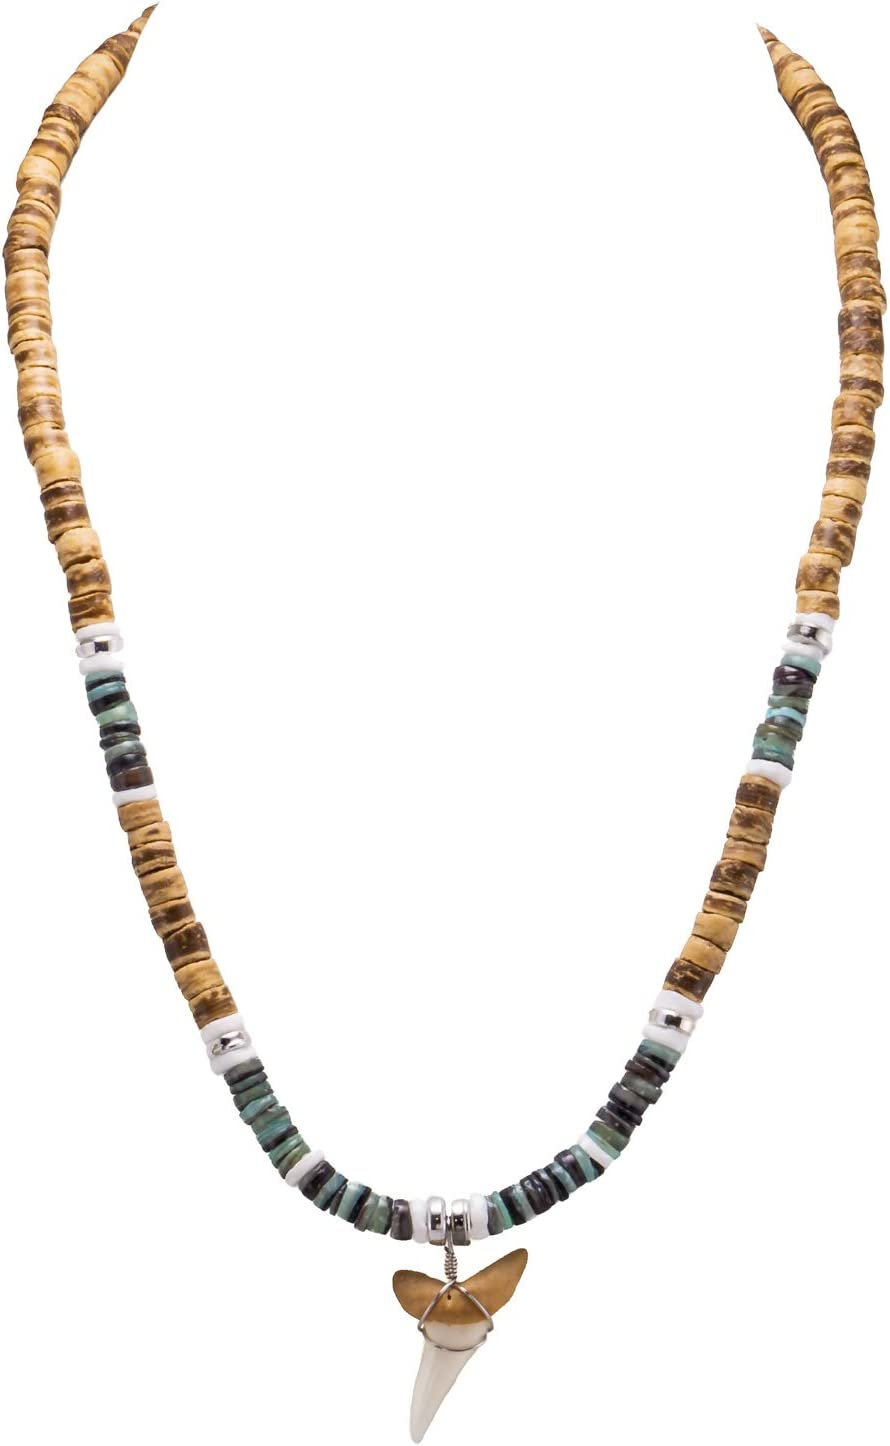 BlueRica Mako Shark Tooth Pendant on Tiger Coconut Wood Beads Necklace with Green Heishi and Puka Shells